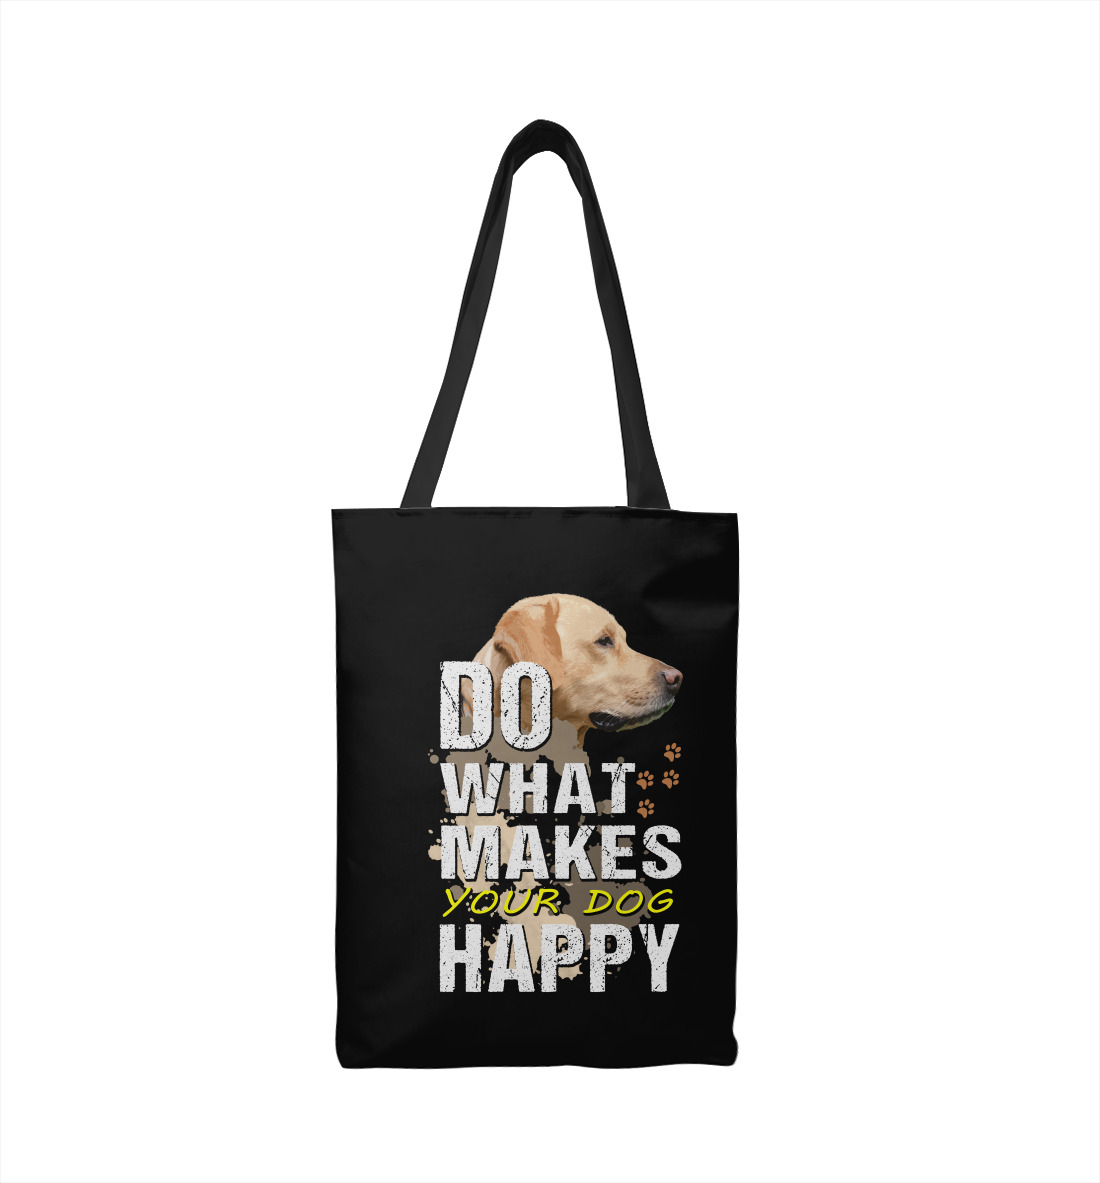 Do what makes your dog happy